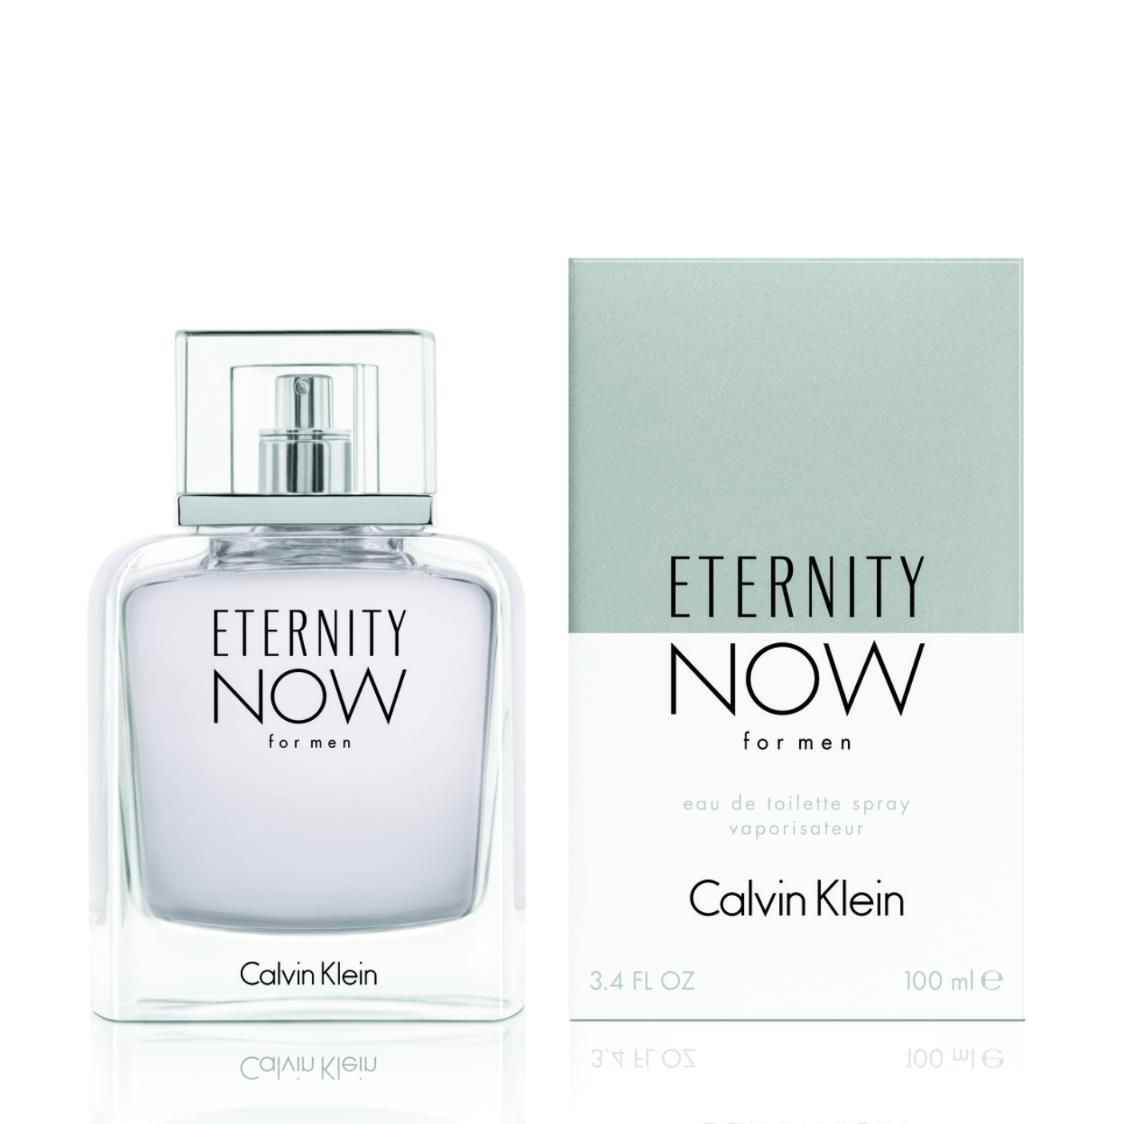 CK Eternity NOW EDT Men 100ml